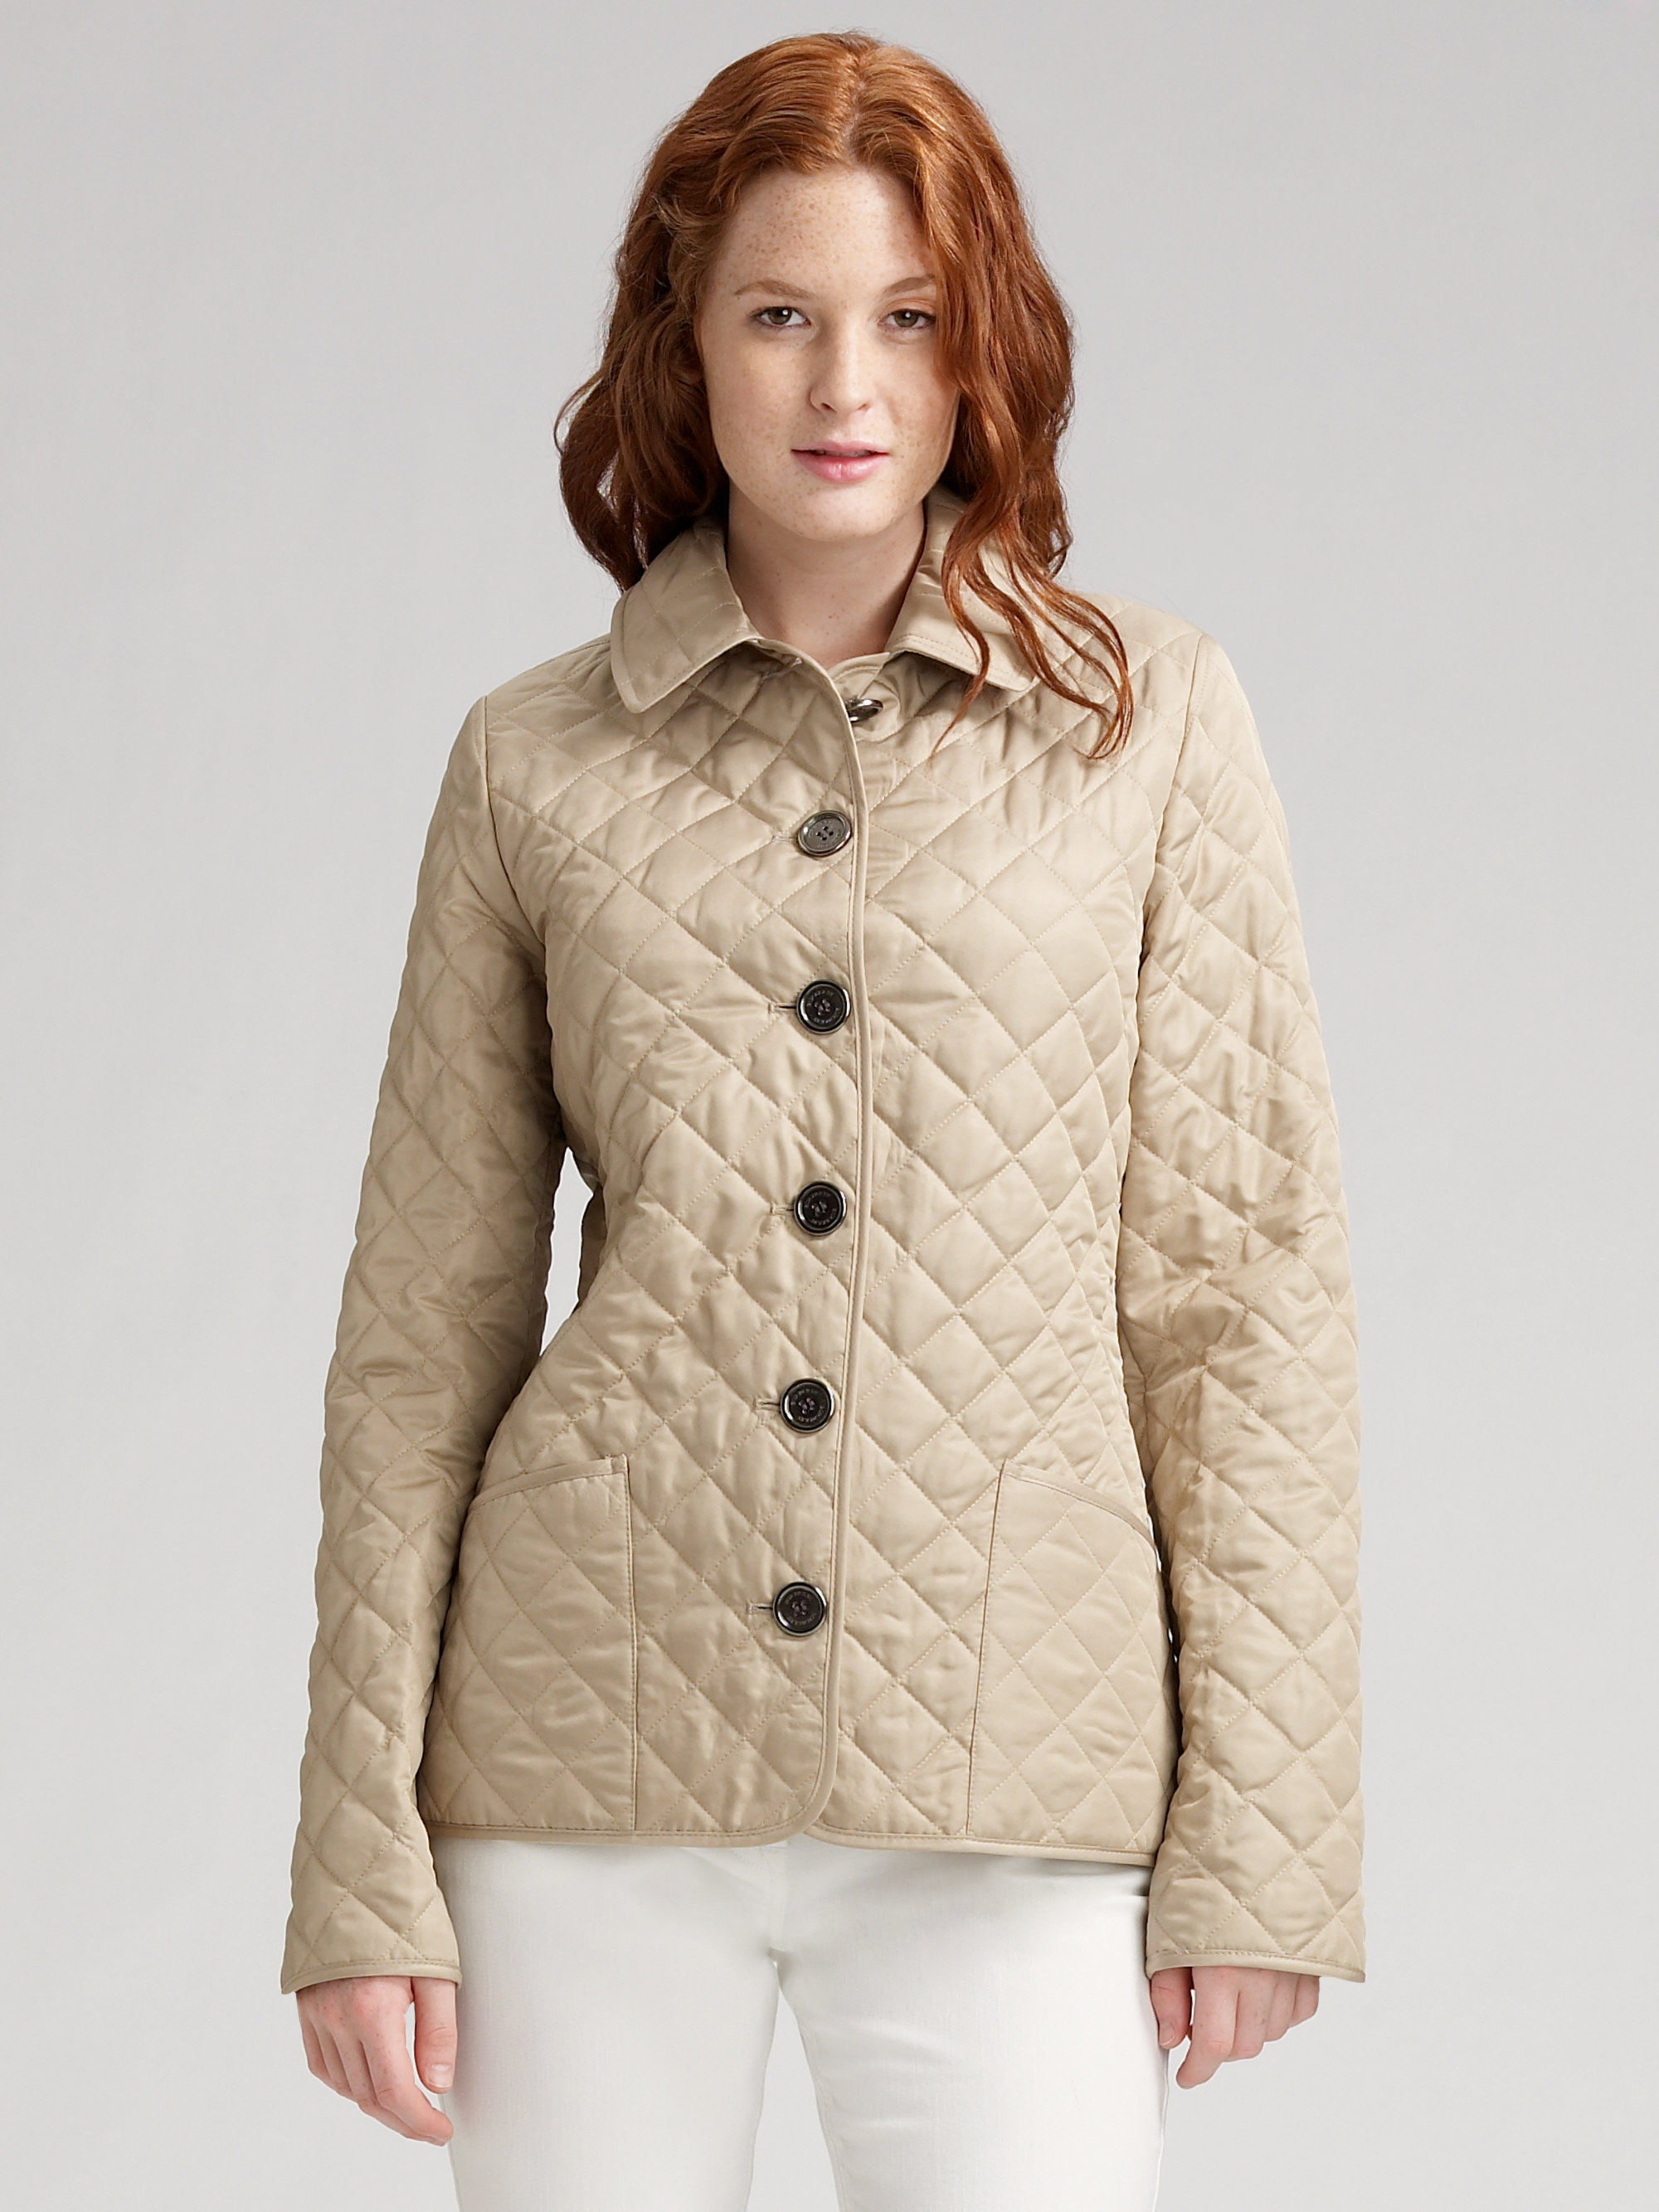 Lyst - Burberry brit Fitted Quilted Jacket in Natural : burberry brit jacket quilted - Adamdwight.com